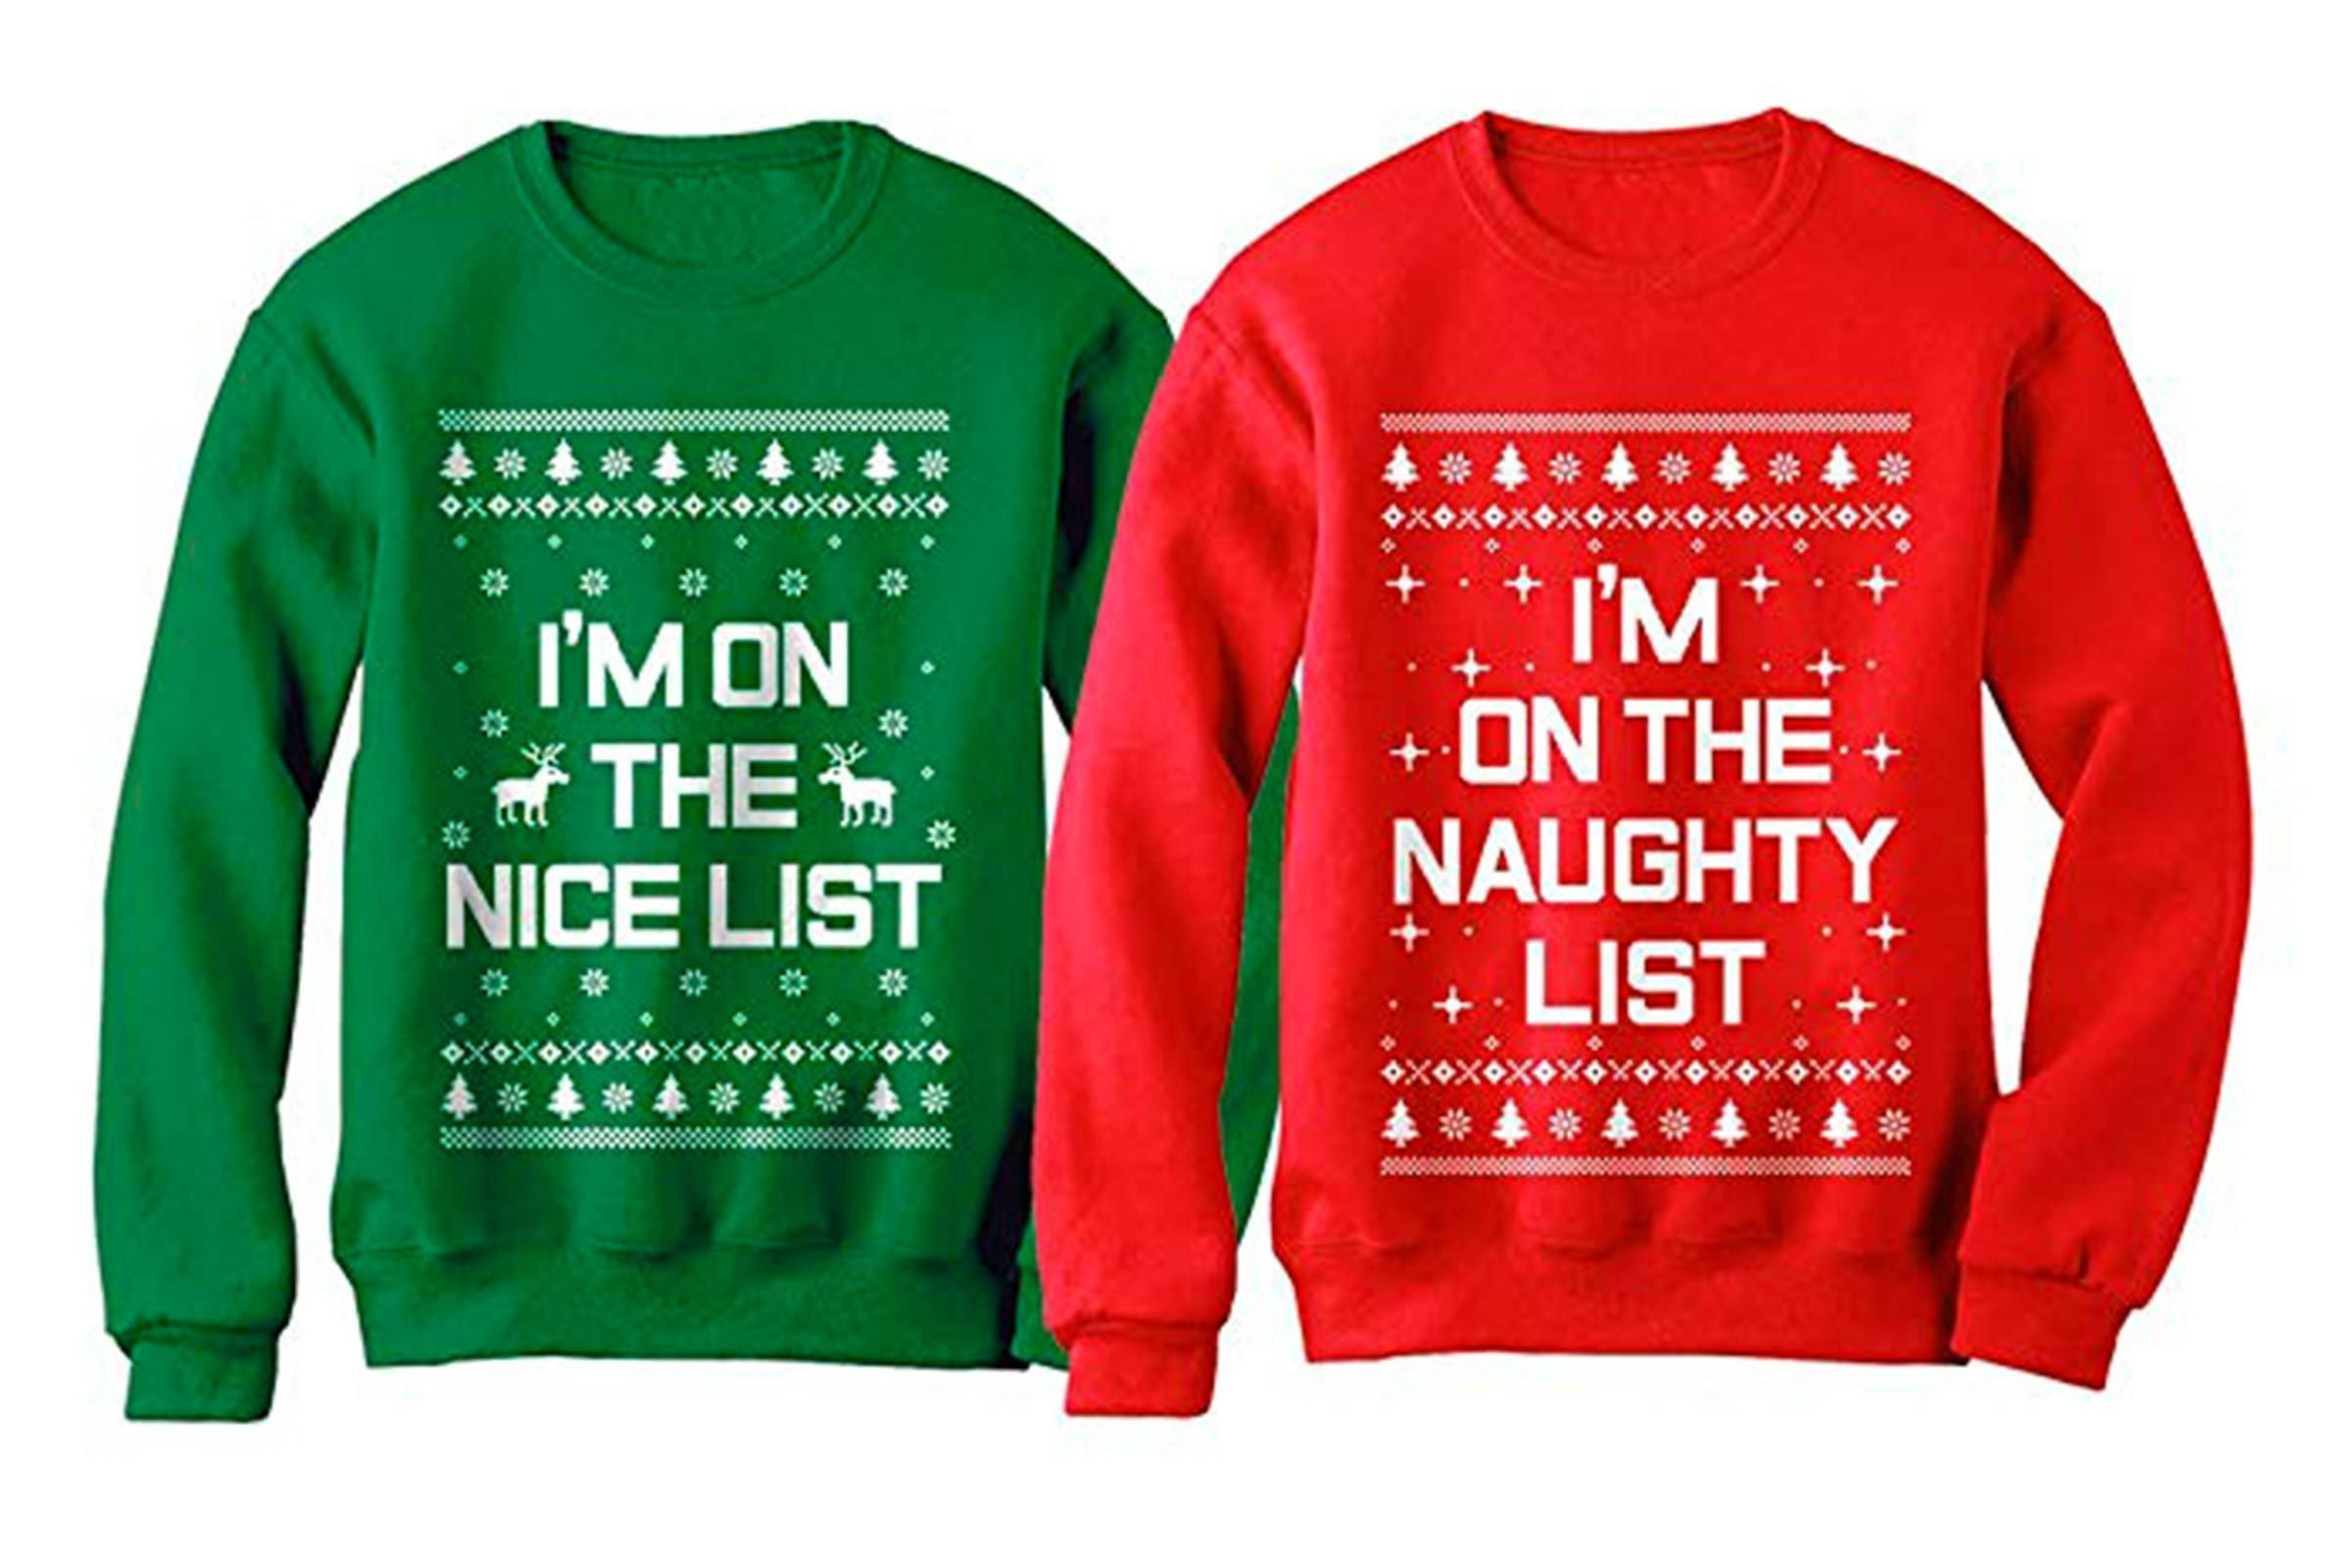 The Best Funny Ugly Christmas Sweaters You Can Buy | Reader\'s Digest